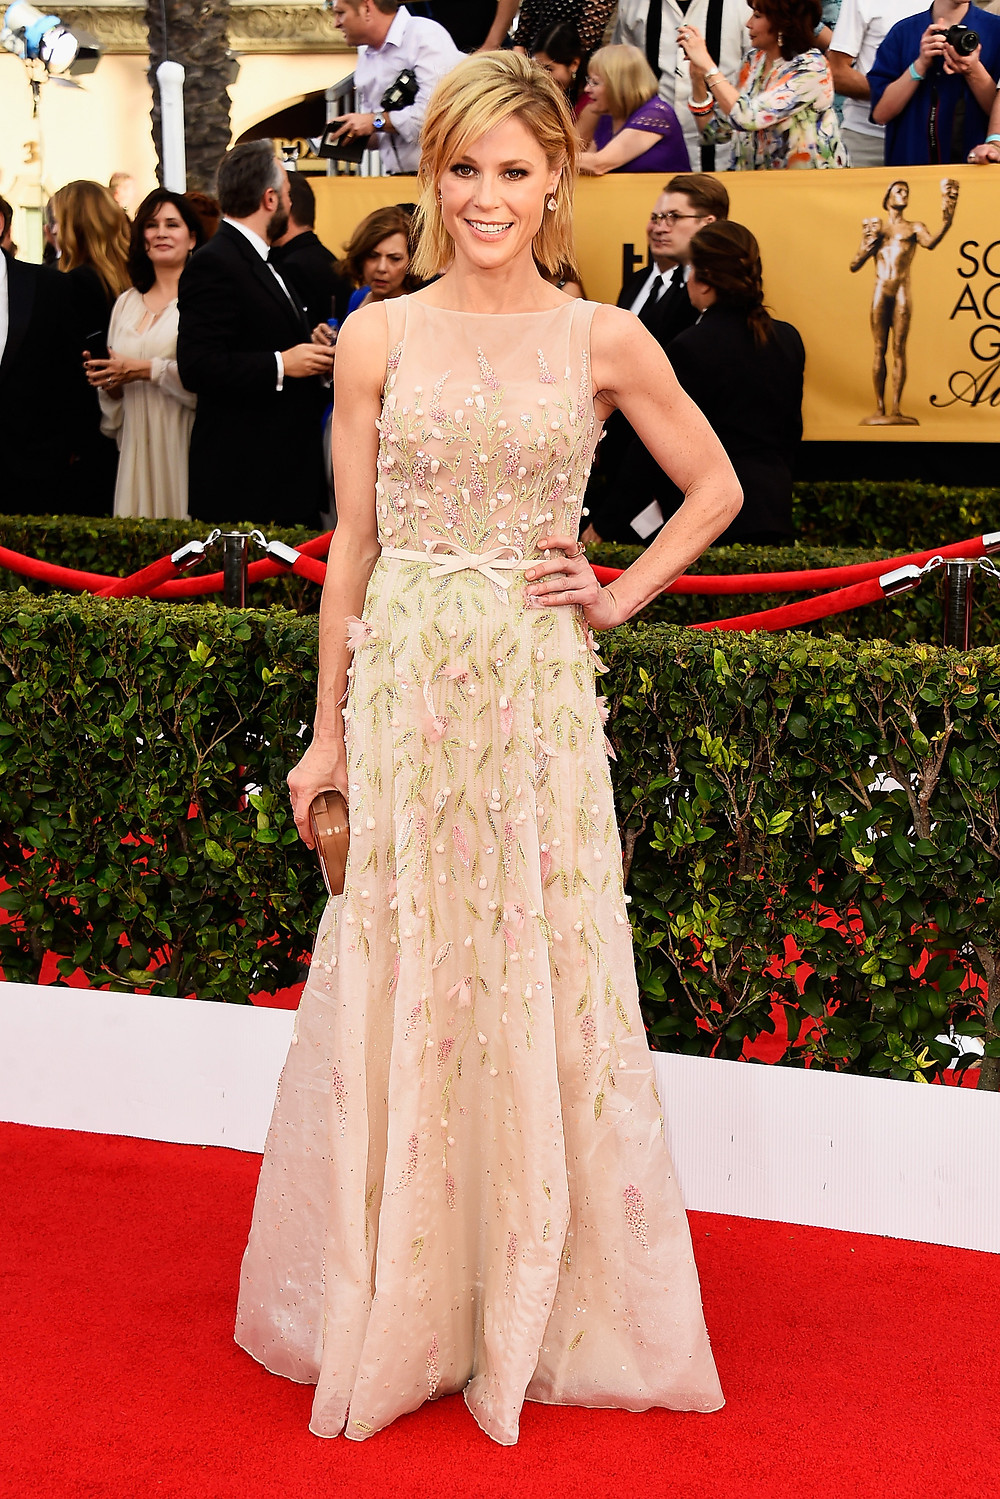 Julie Bowen in Georges Hobeika .jpg